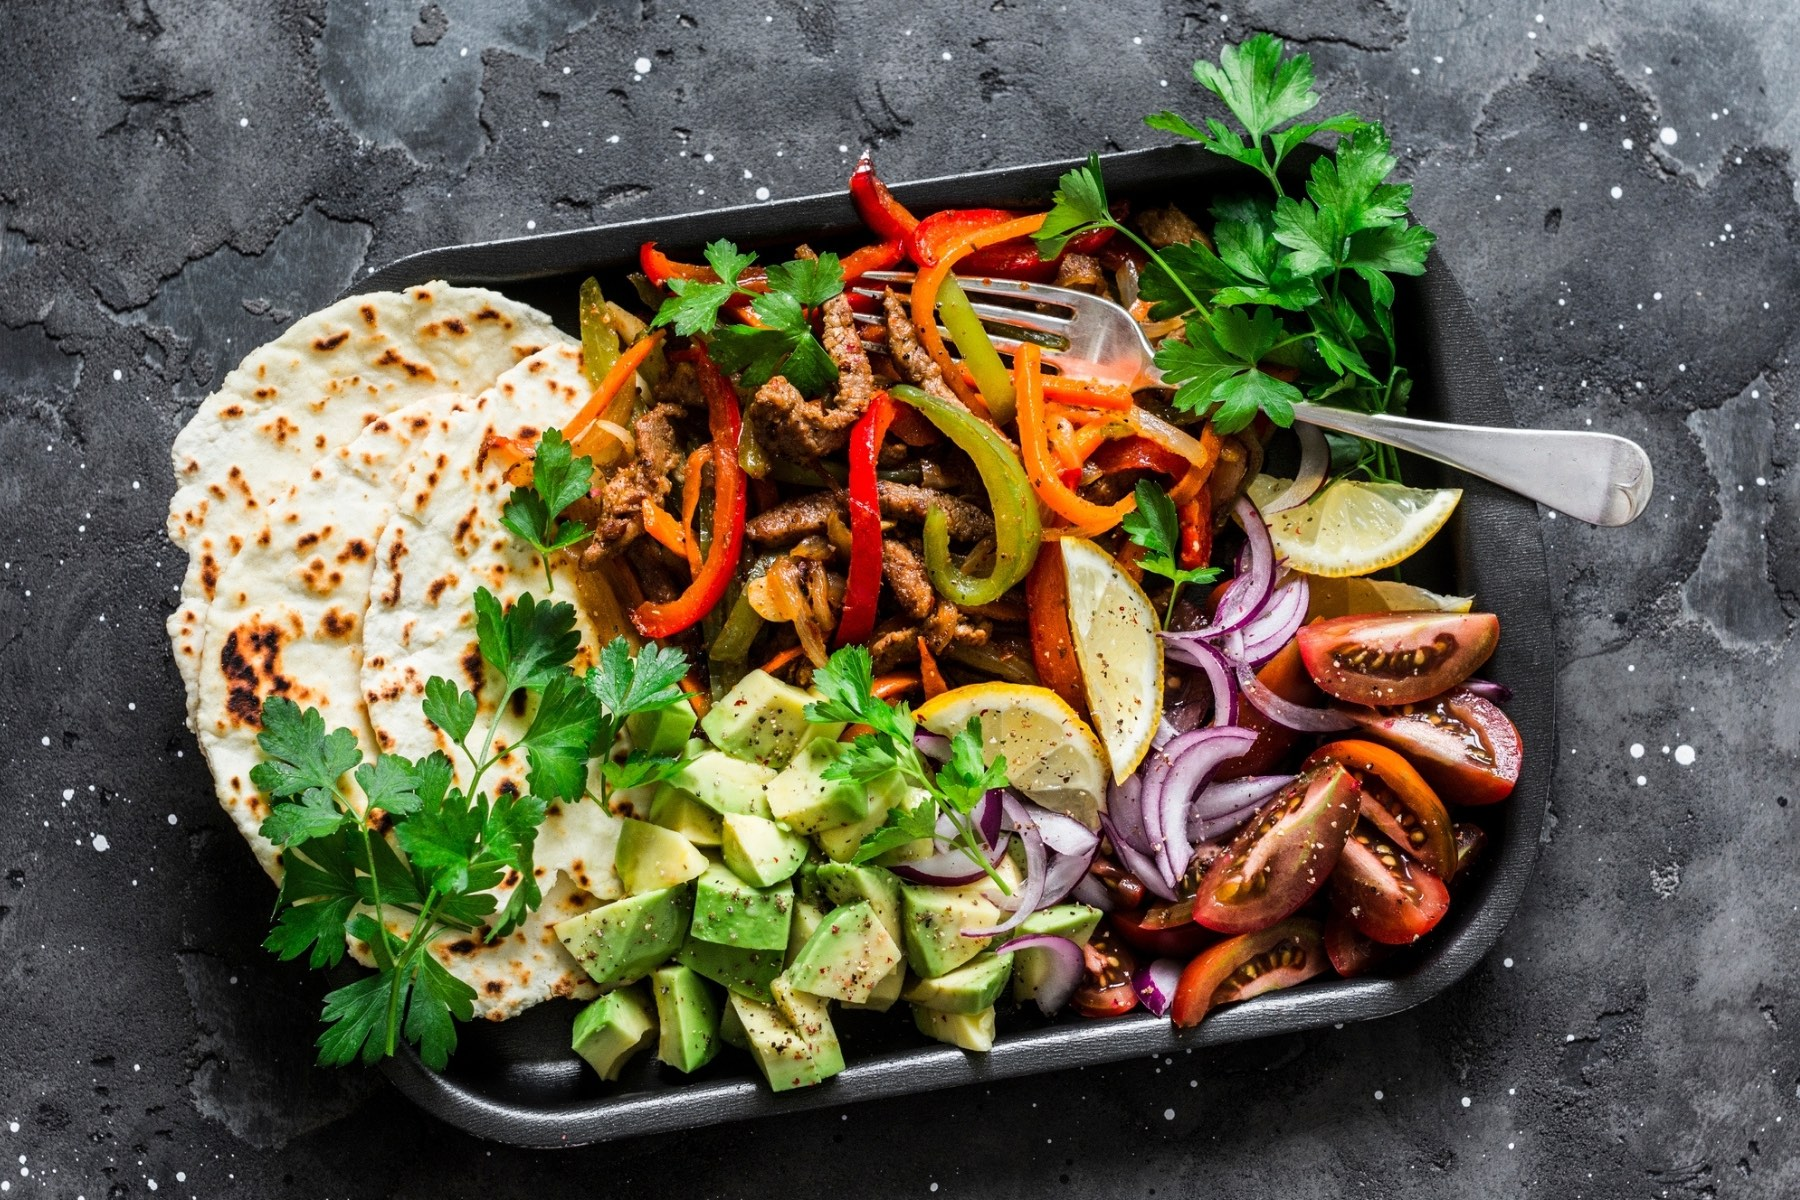 Image of ingredients to assemble a fajita, including beef strips, grilled peppers, tomato wedges, cubes of avocado and tortilla wraps in a takeout container